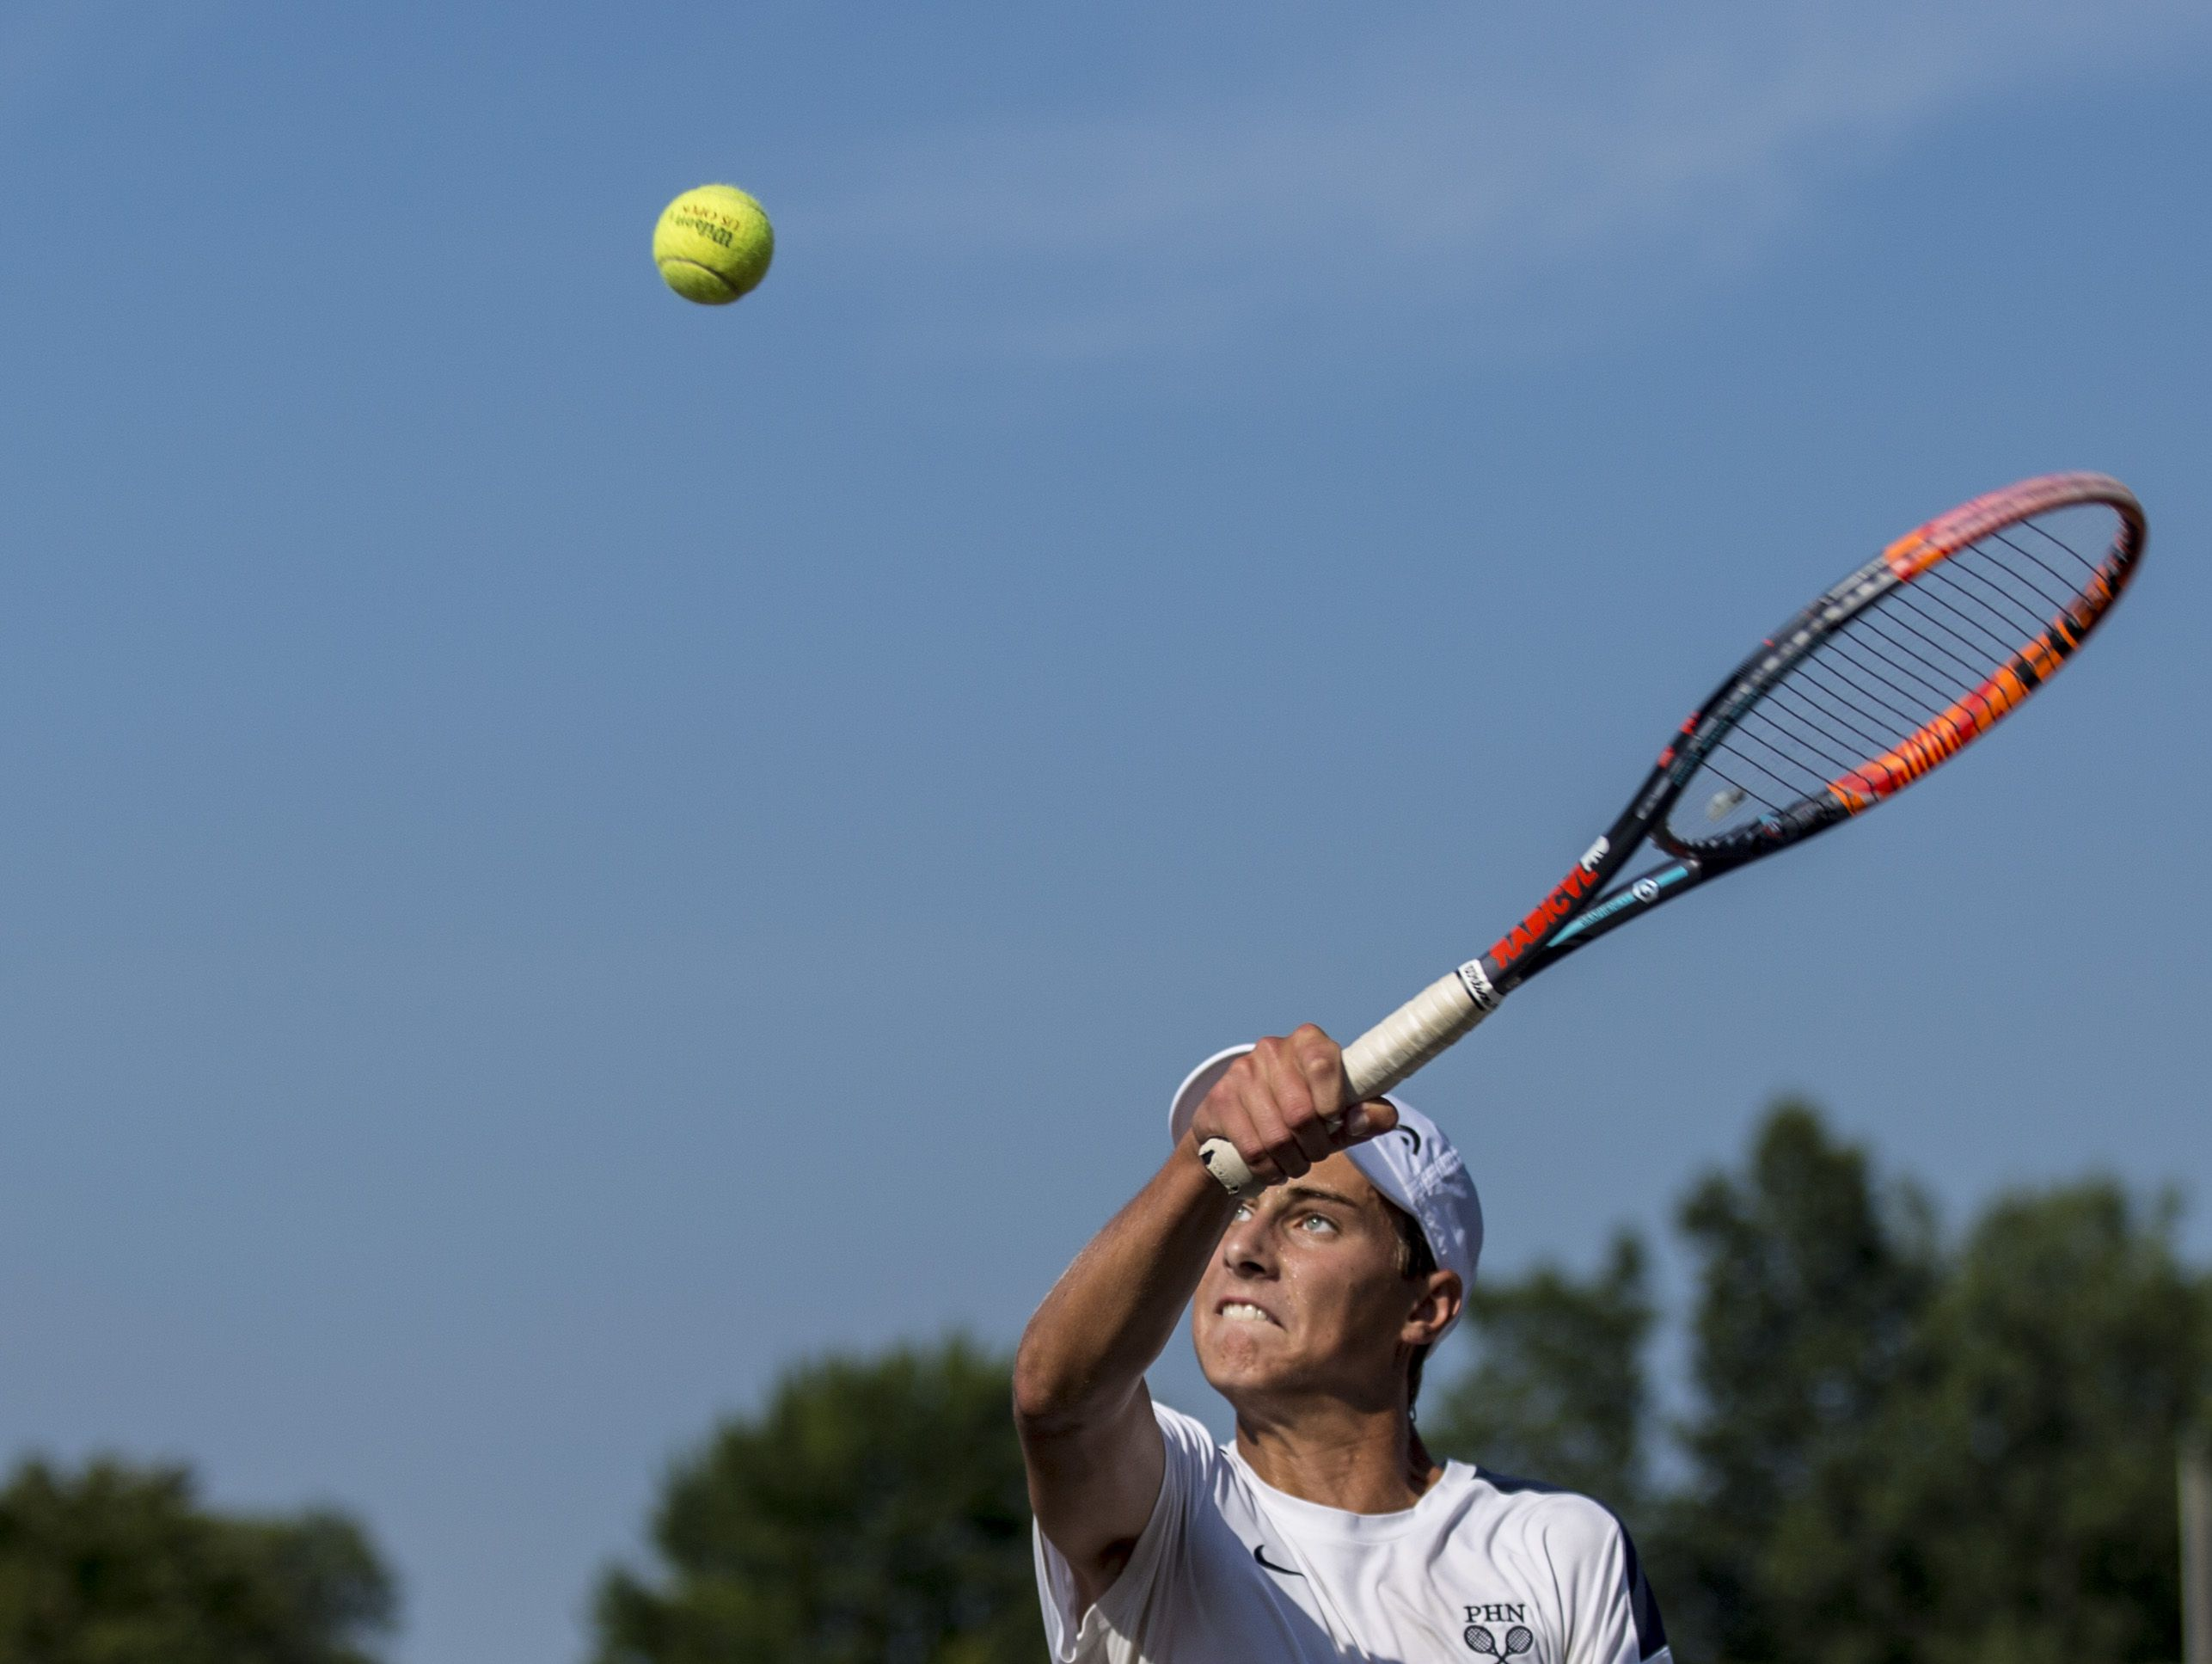 Port Huron Northern's Chris Adams returns the ball during tennis practice Tuesday, August 30, 2016 at Port Huron Northern High School.